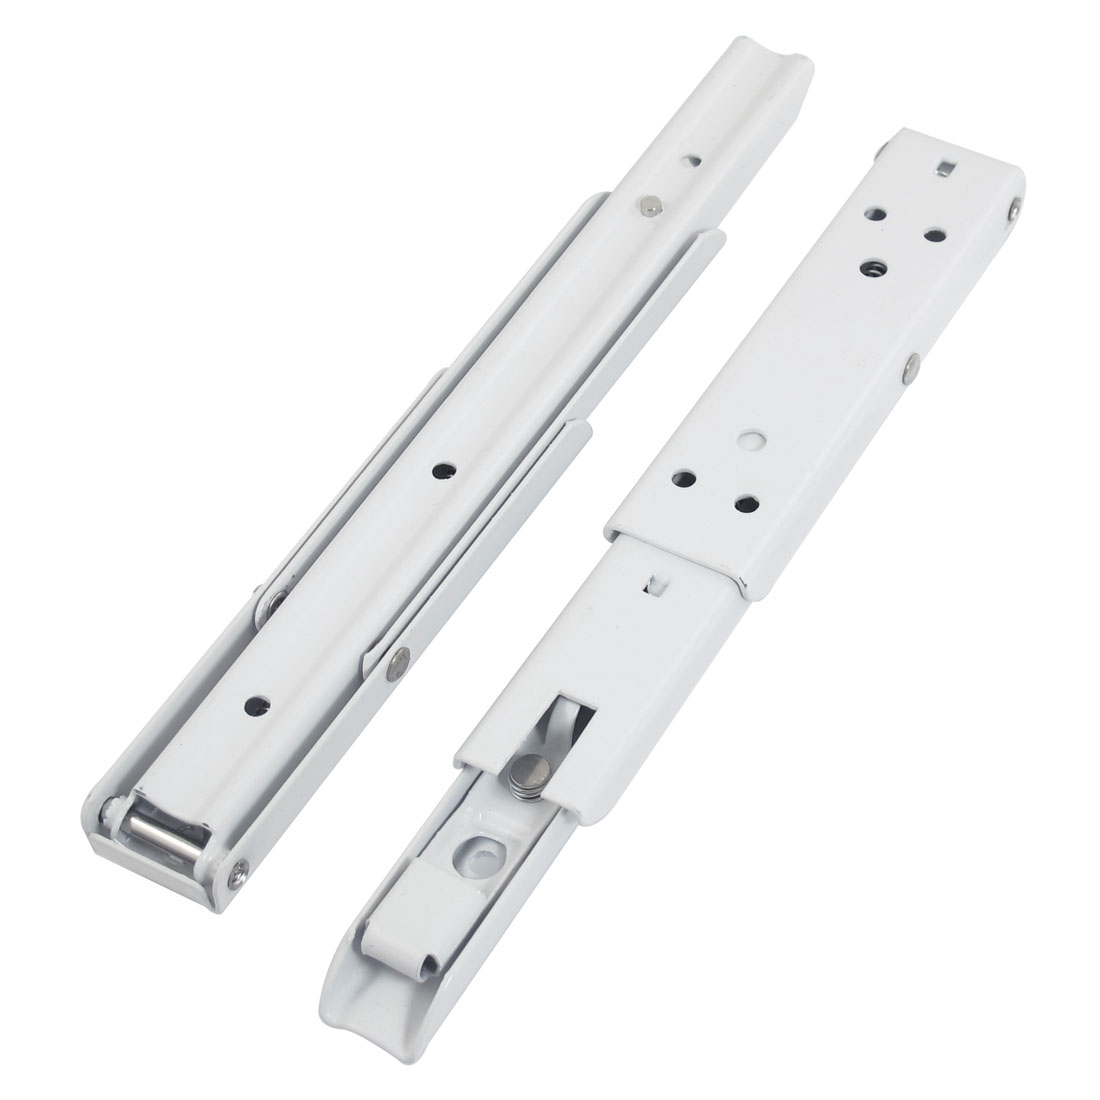 "Stainless Steel 90 Degree Angle 10"" Height Bracket White 2 Pcs"